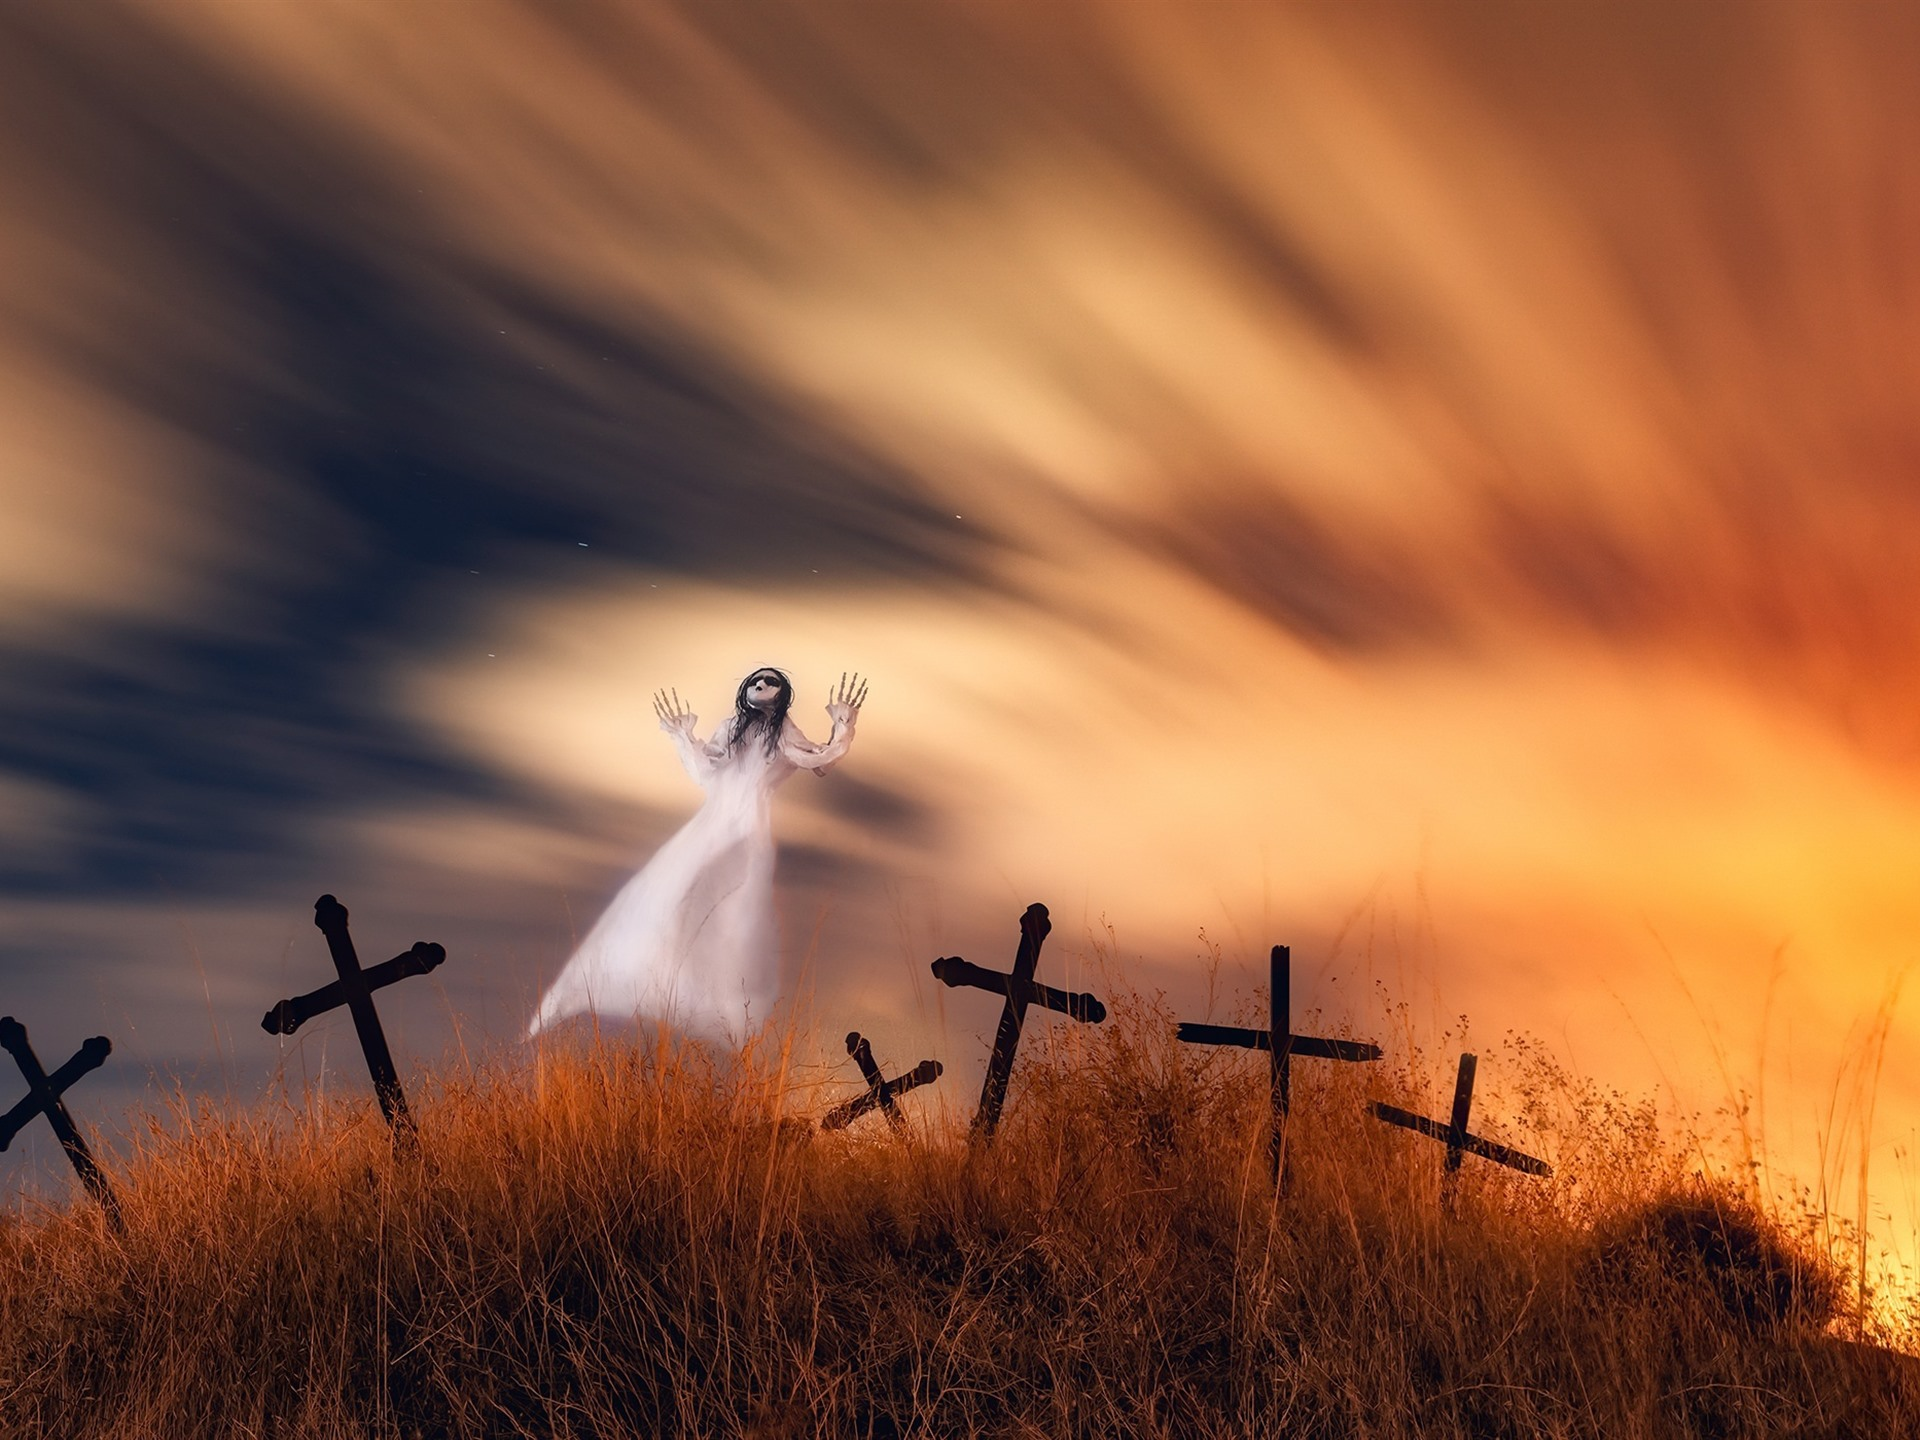 Wallpaper Ghost Cemetery Cross Horror 1920x1440 Hd Picture Image